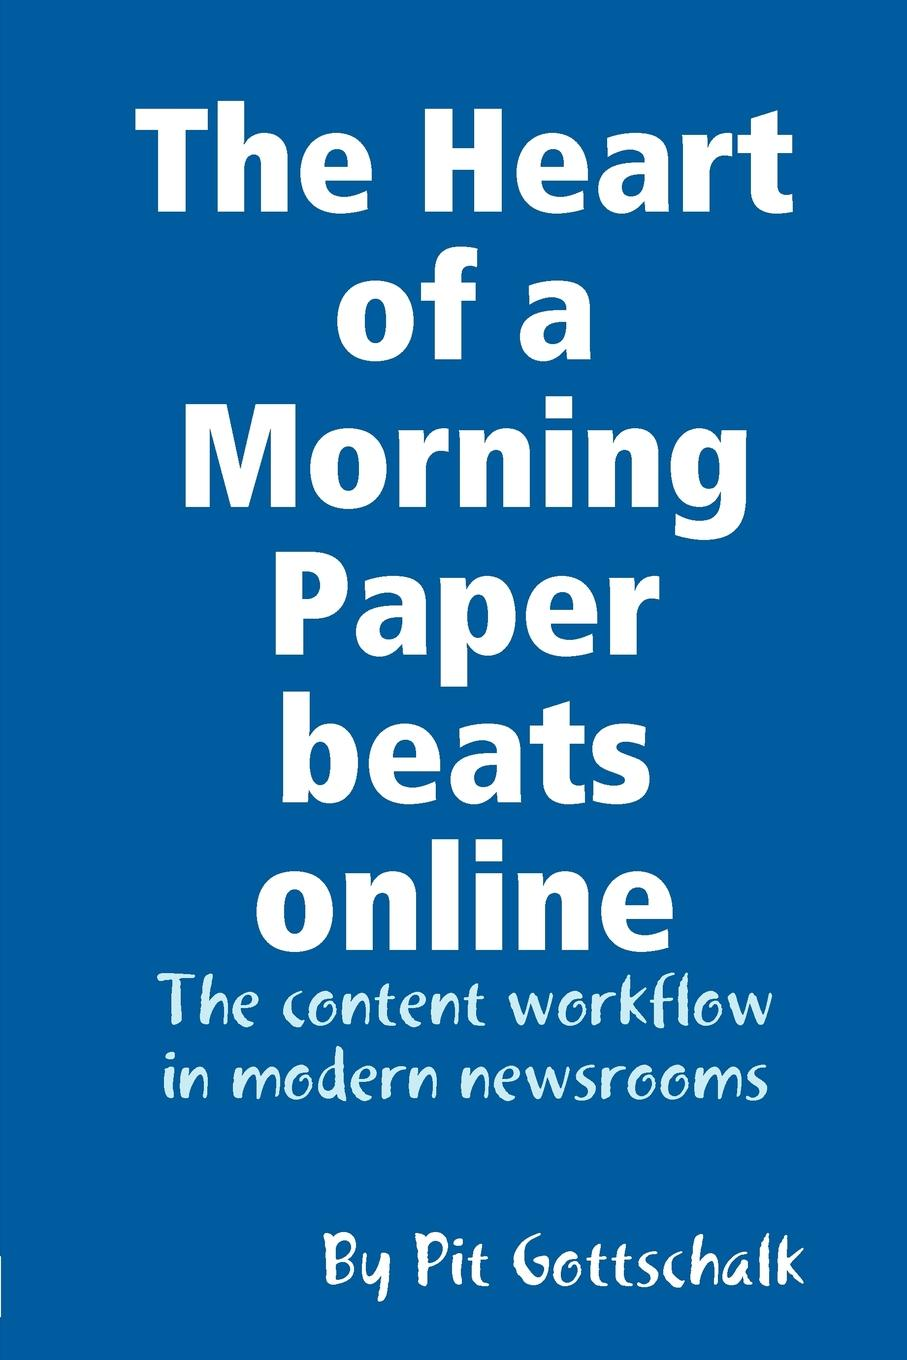 The Heart of a Morning Paper beats online If online journalism becomes an integral part of the daily routine...